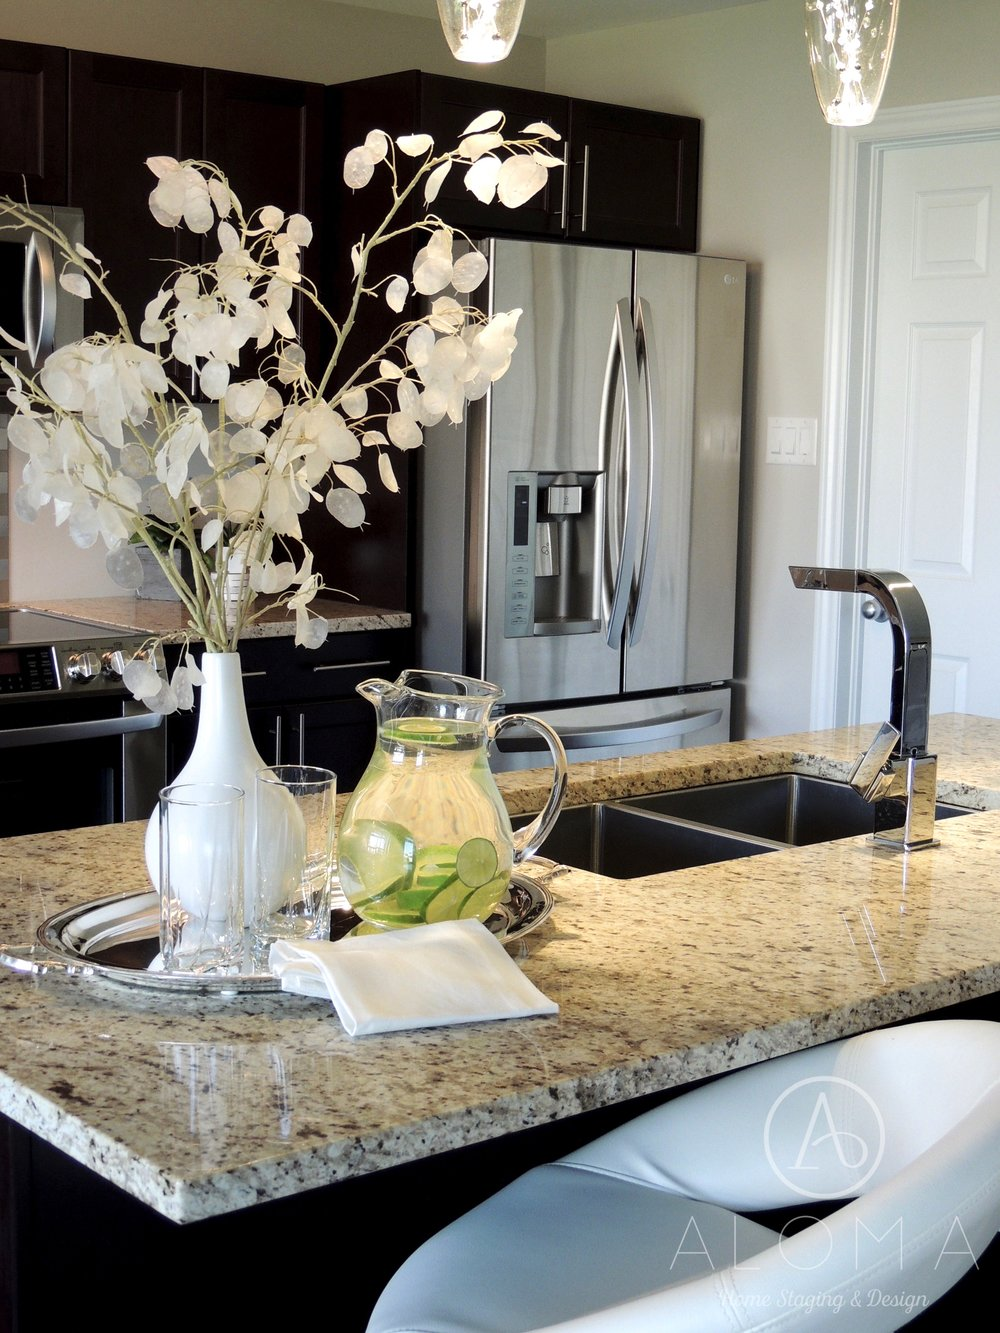 Kitchen design by Aloma Home Staging & Design